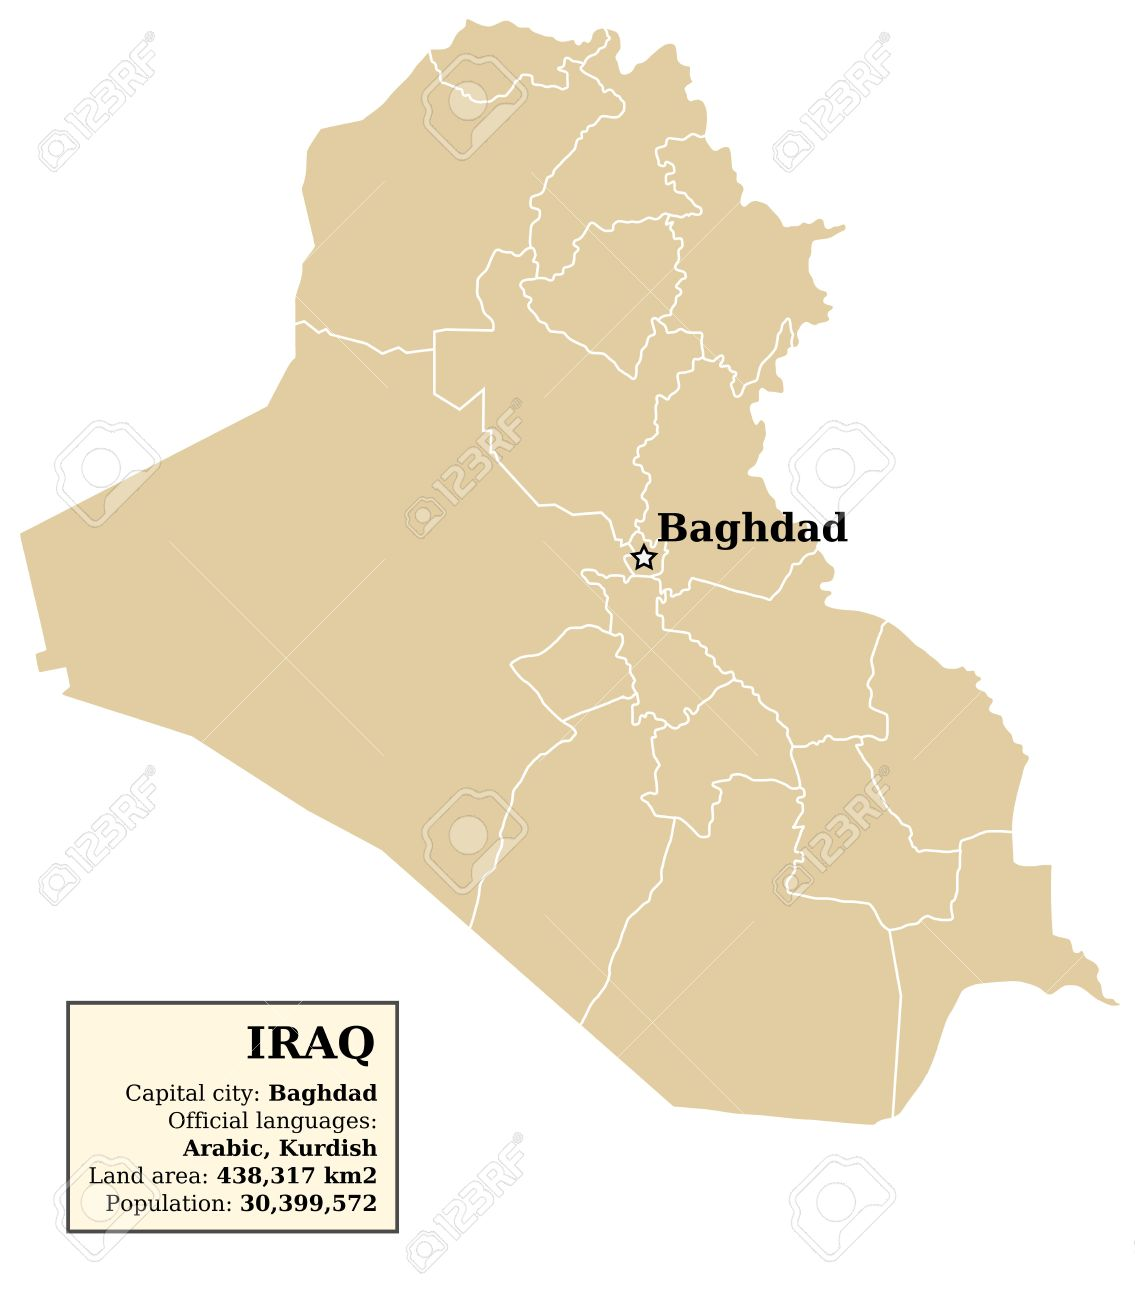 Iraq Map With Outlines Of Provinces governorates Royalty Free